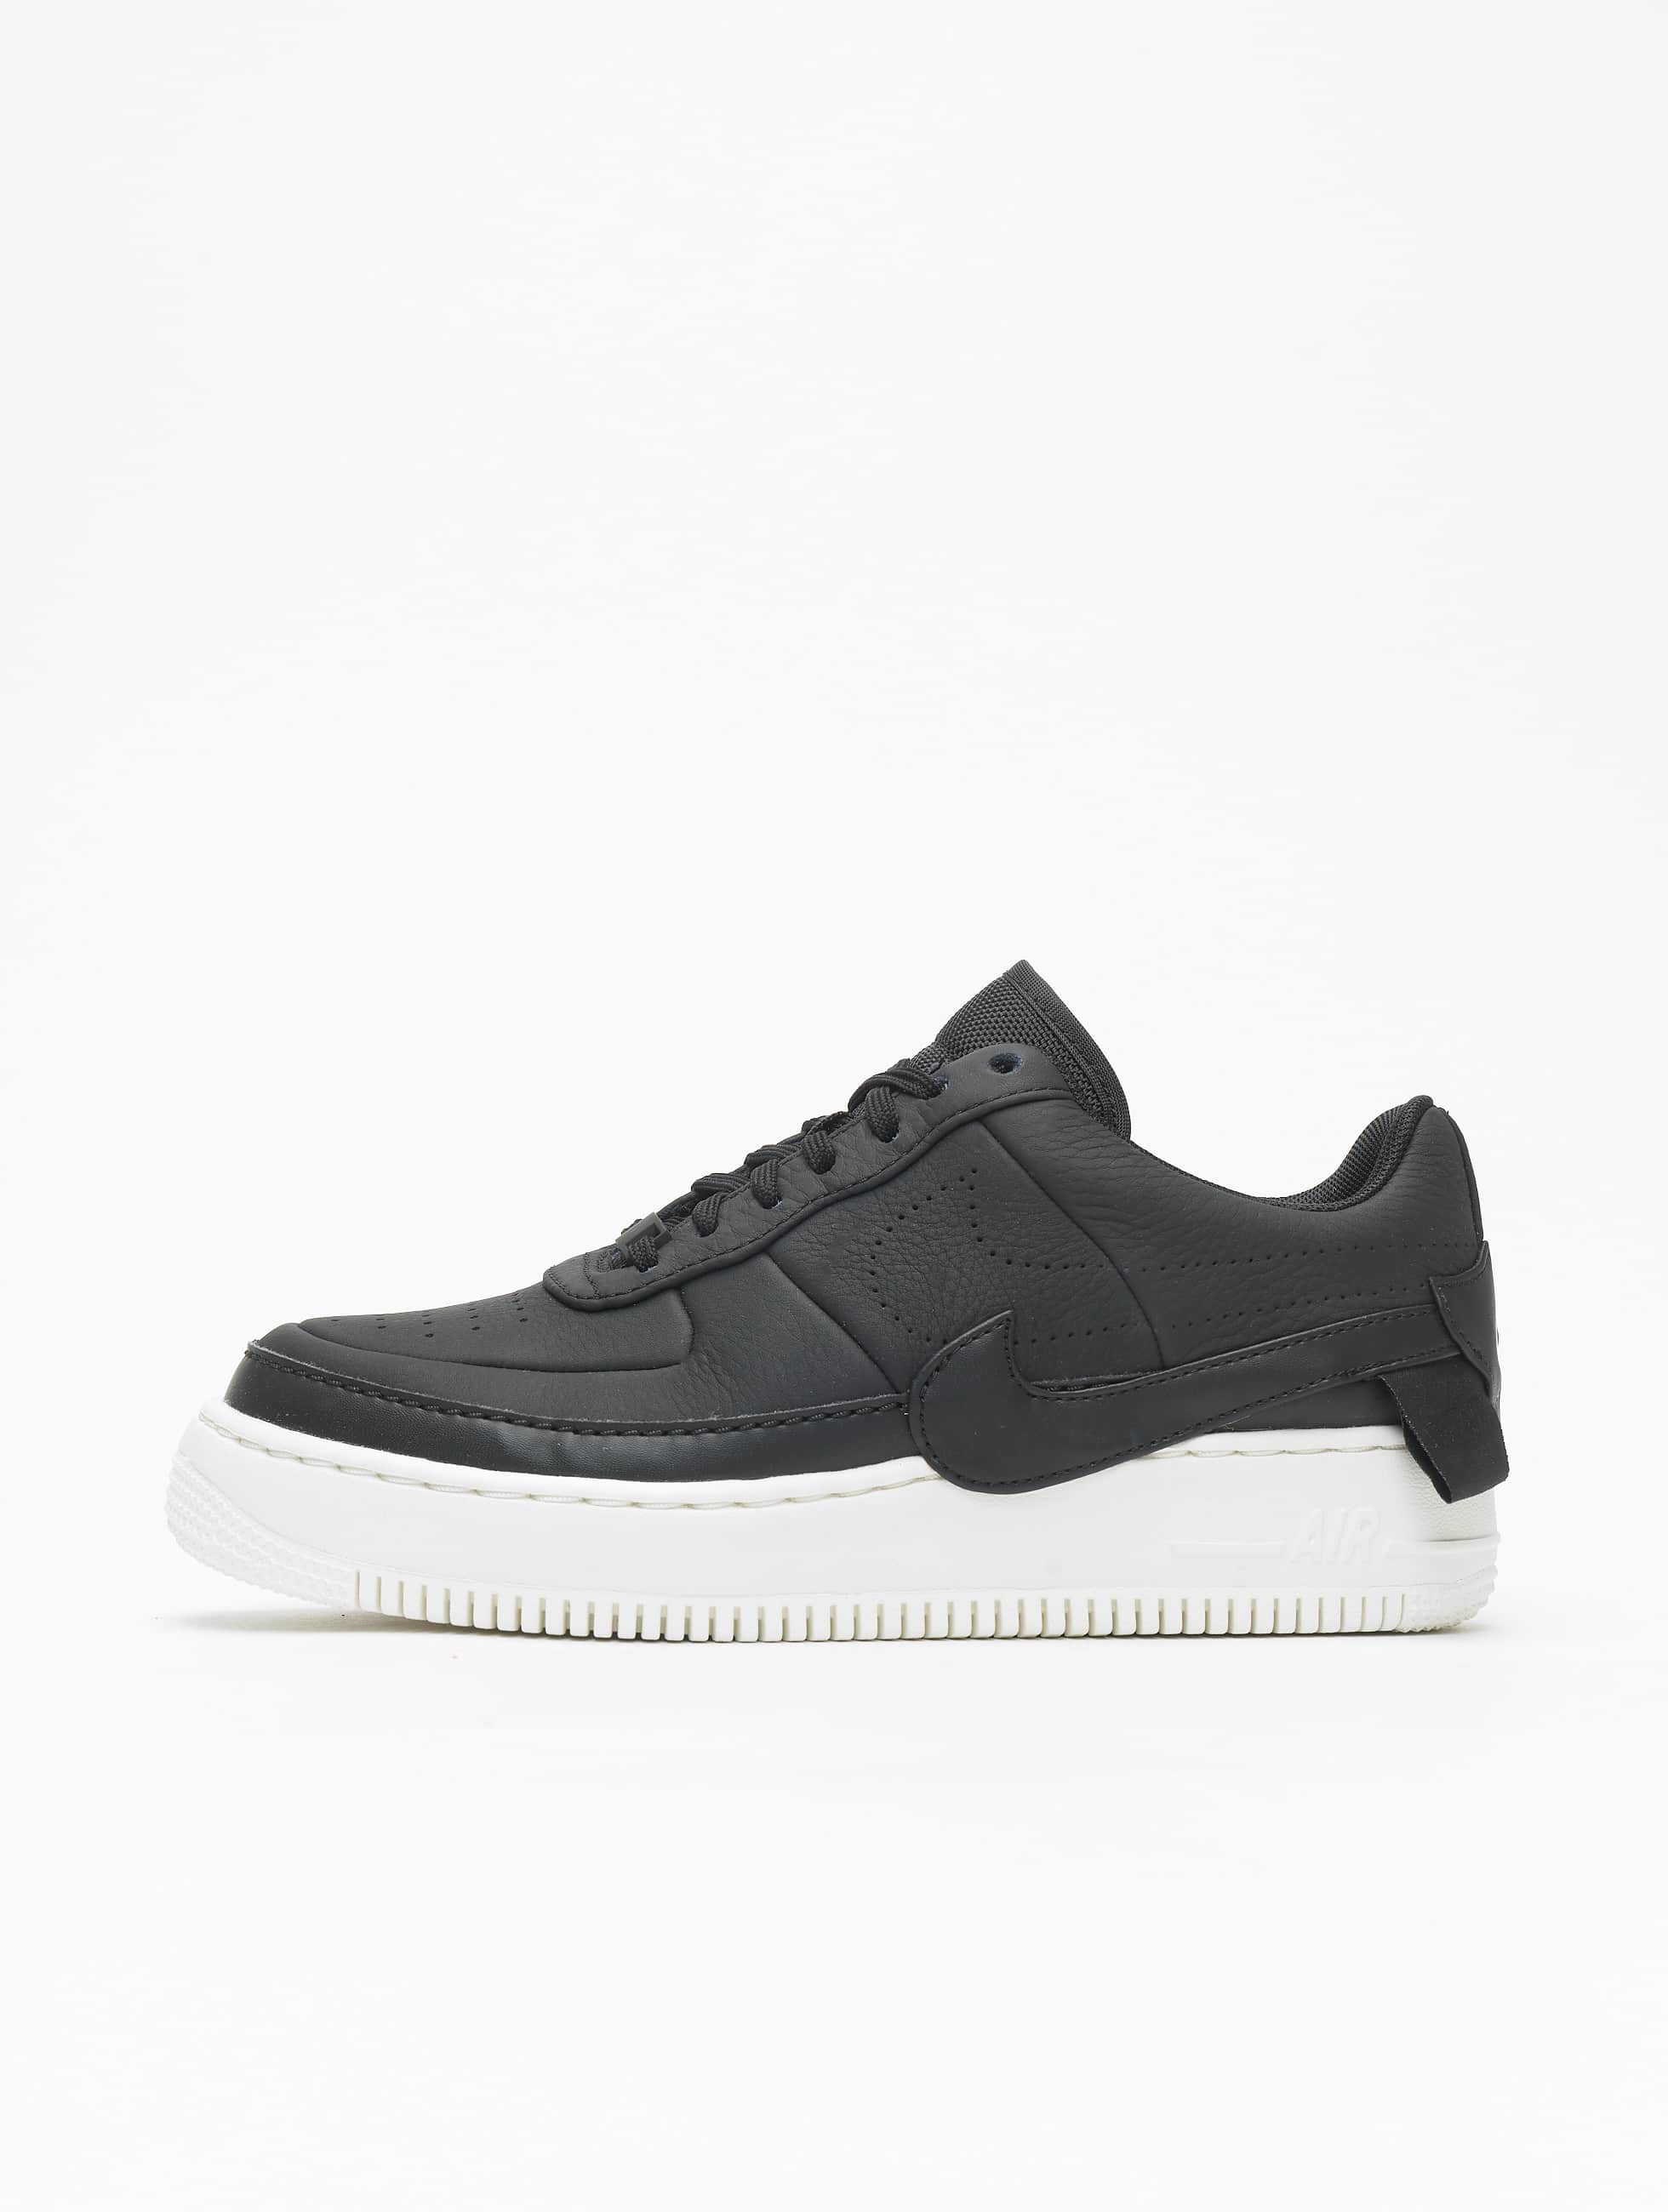 outlet store 0173f b23ad Nike Skor   Sneakers Air Force 1 Jester XX Premium i svart 673207